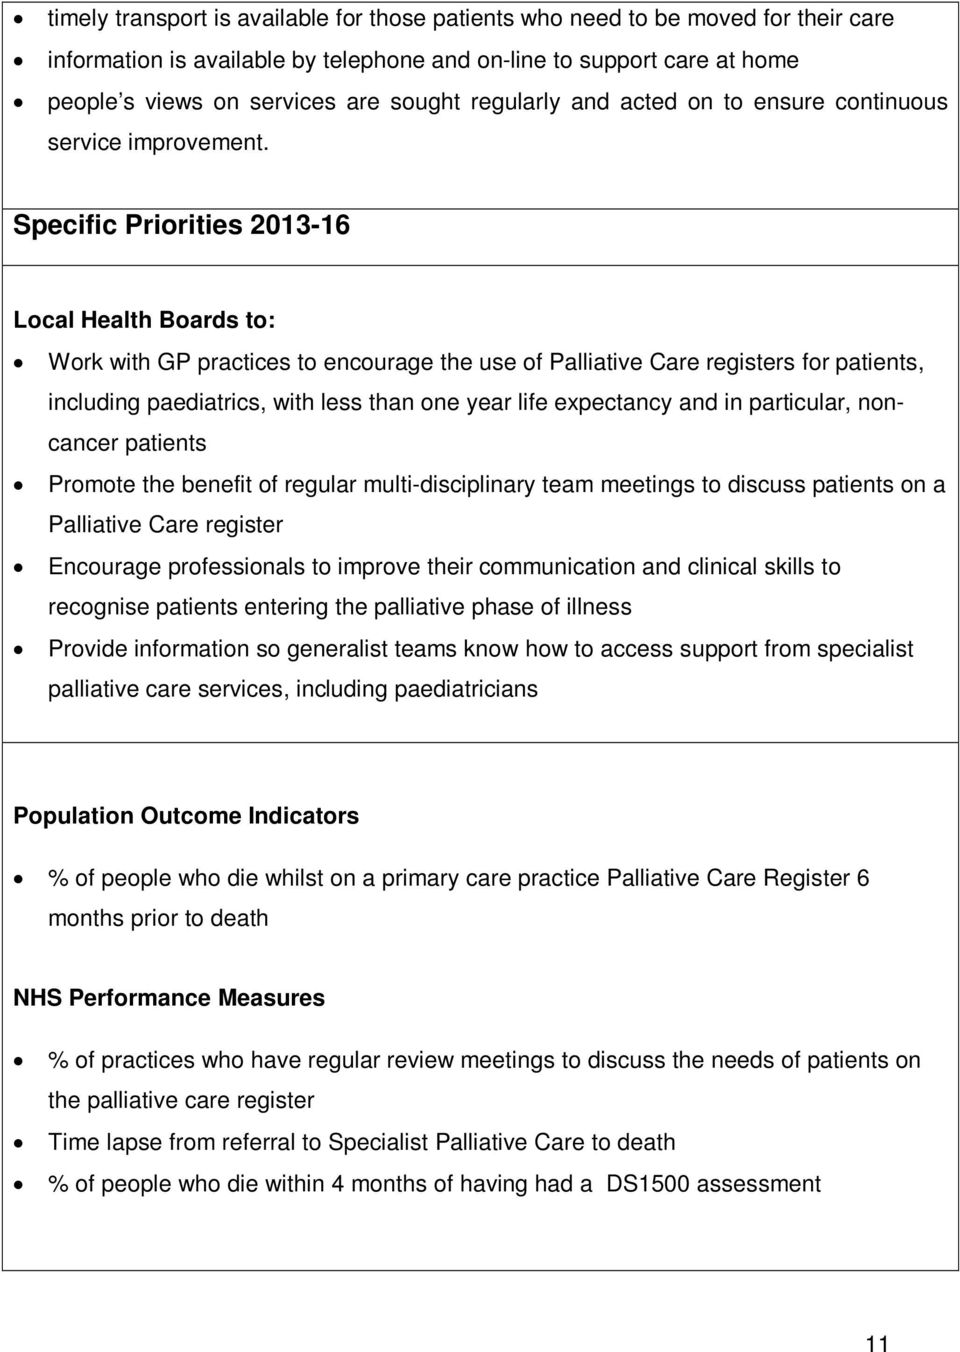 Specific Priorities 2013-16 Local Health Boards to: Work with GP practices to encourage the use of Palliative Care registers for patients, including paediatrics, with less than one year life